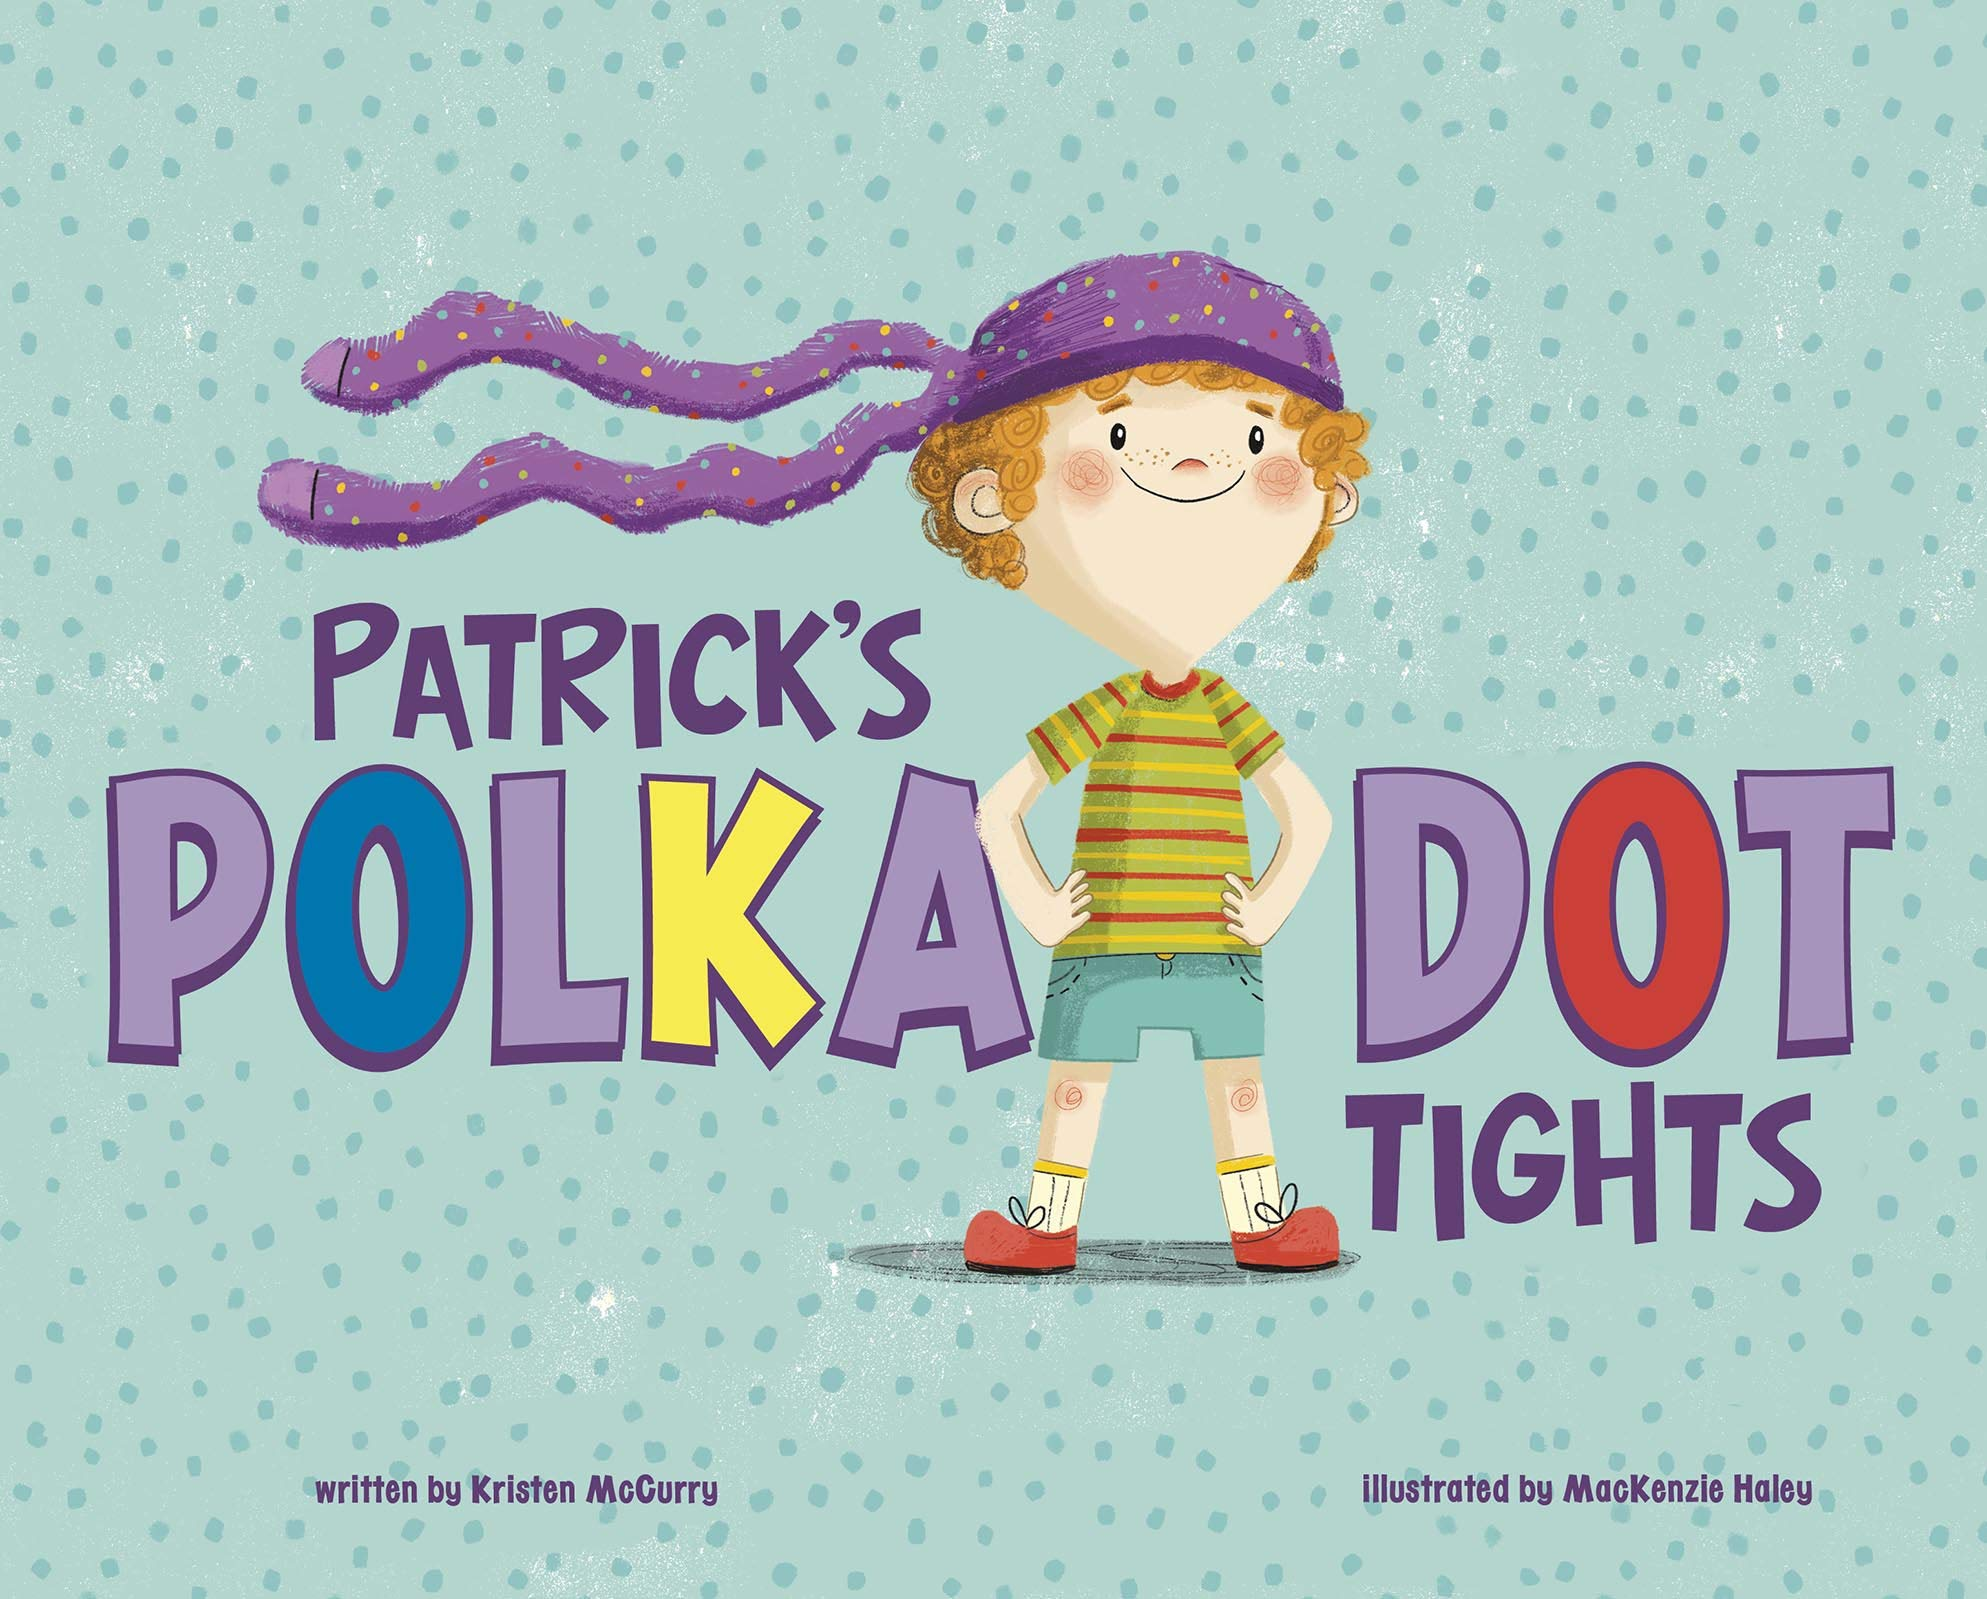 Patrick's Polka Dot Tights